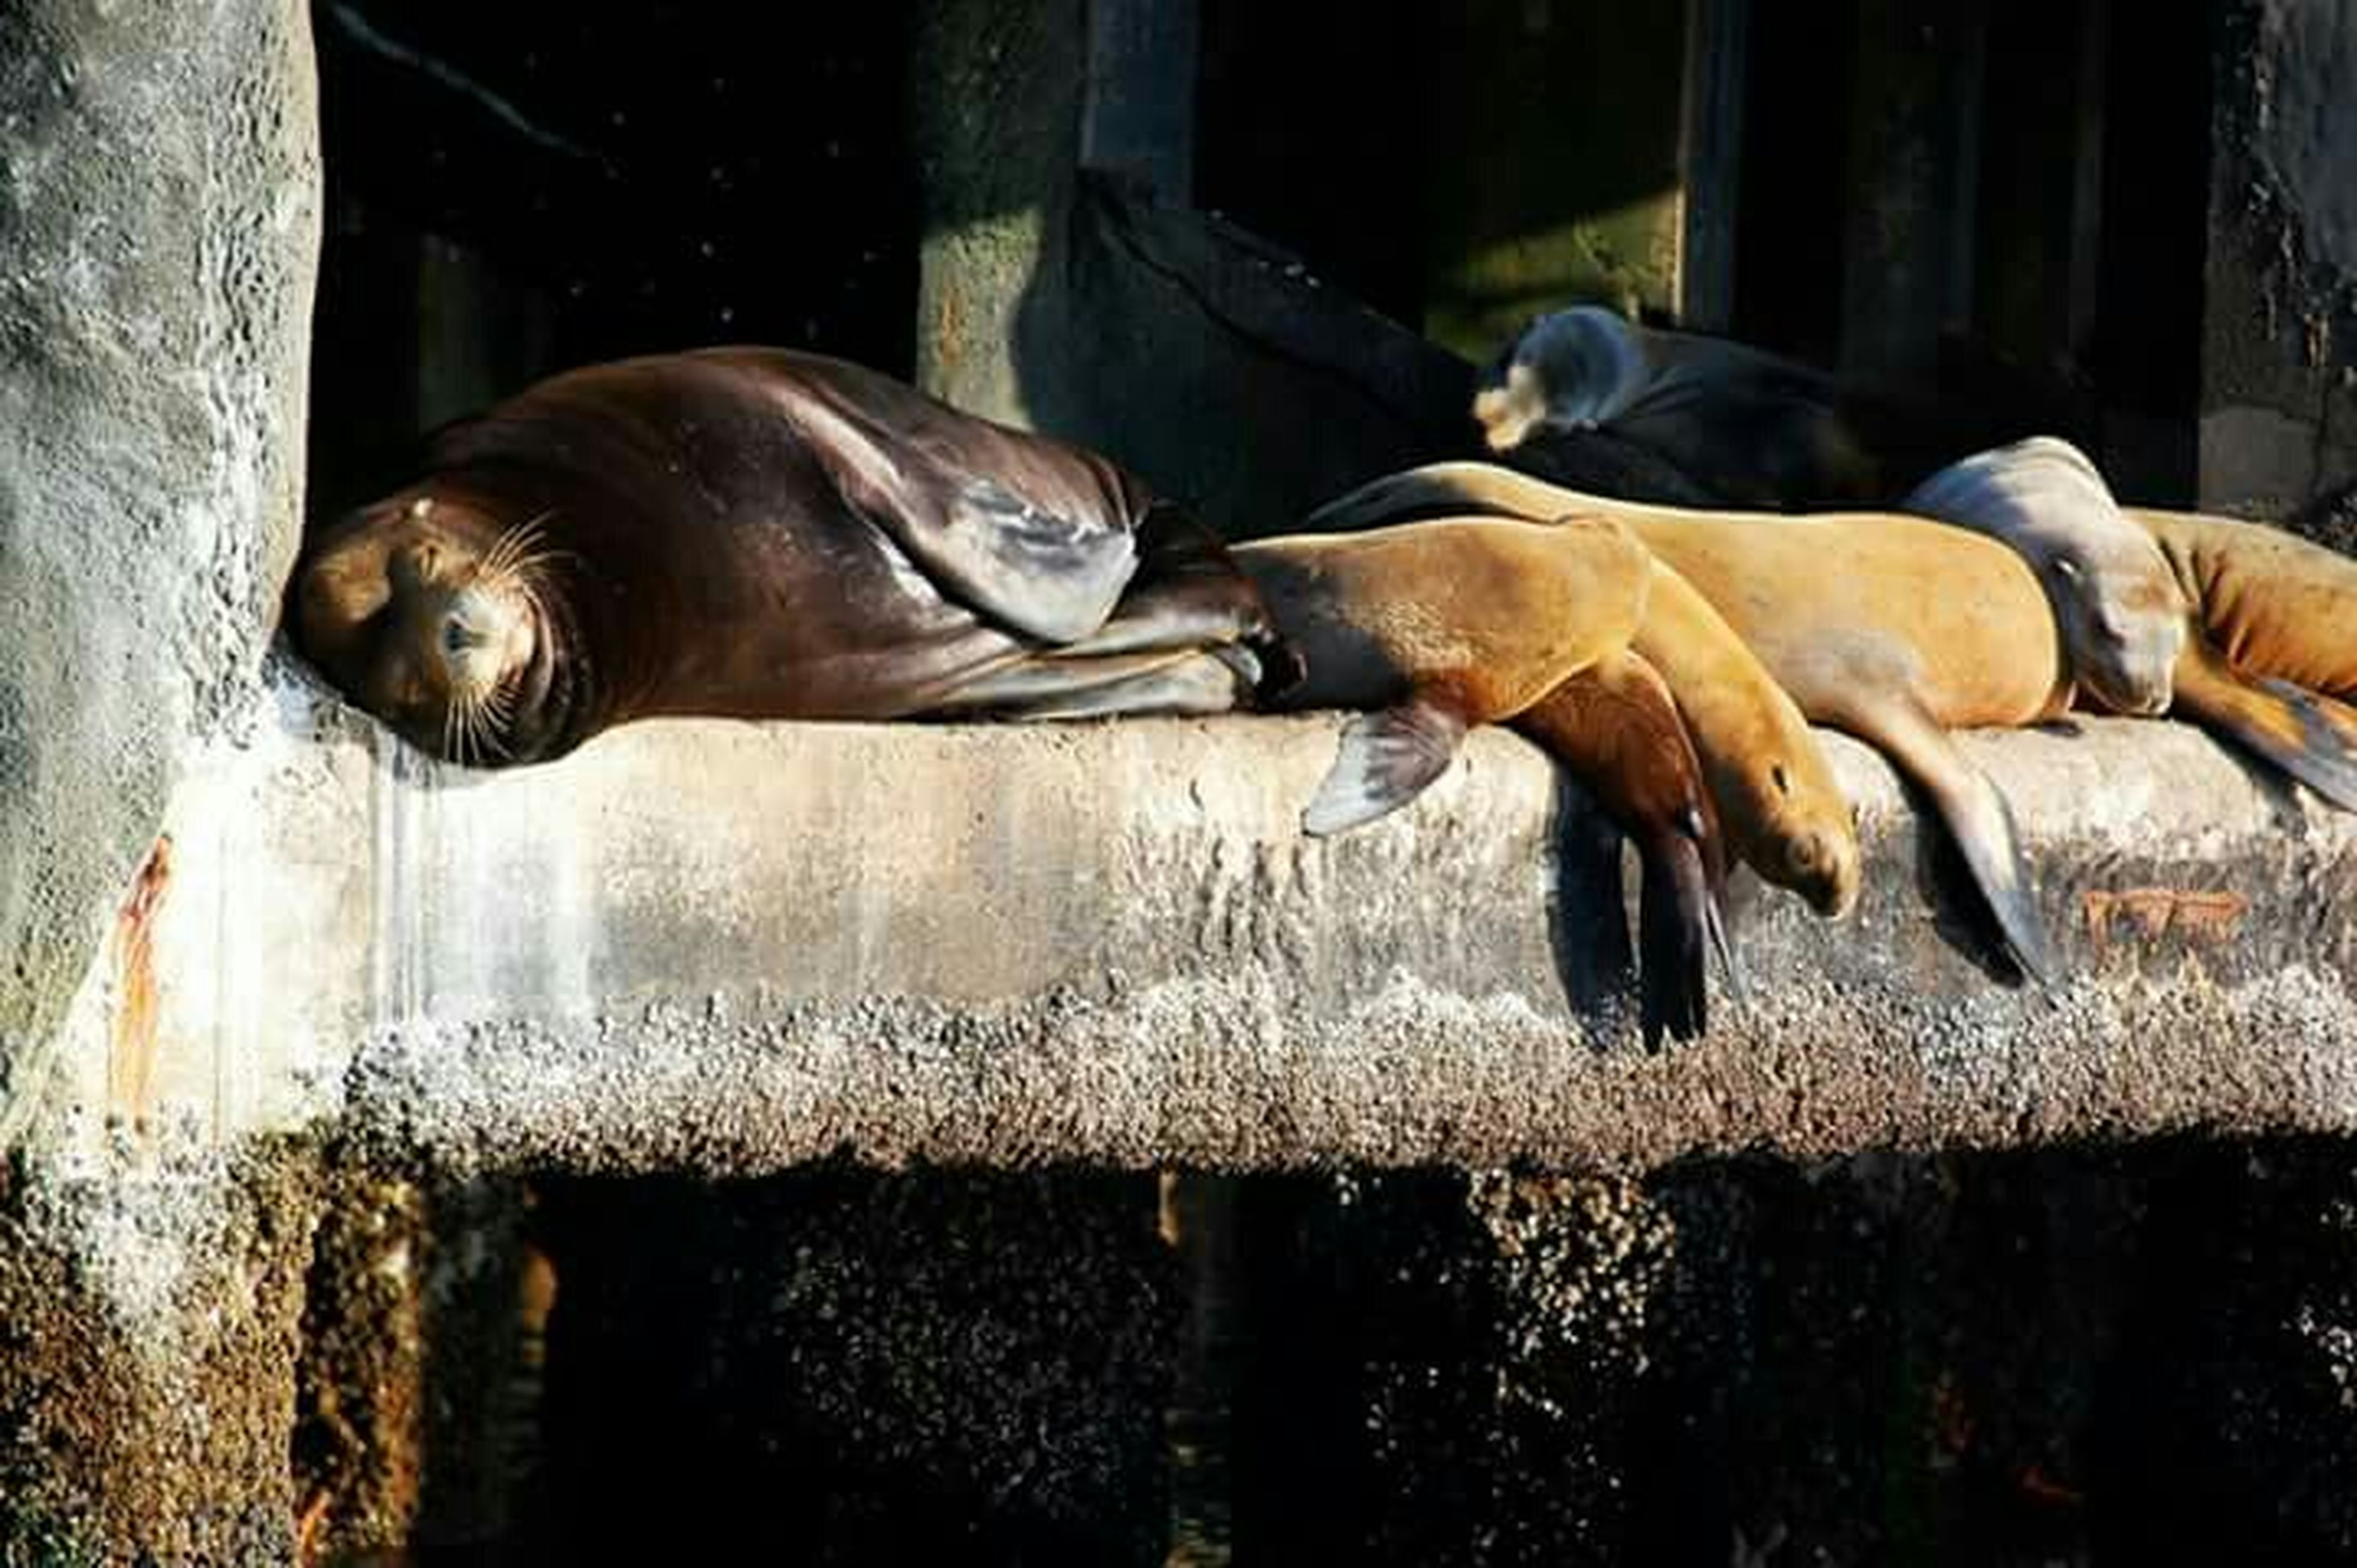 animal themes, domestic animals, mammal, livestock, horse, two animals, standing, full length, herbivorous, one animal, dog, togetherness, sunlight, day, outdoors, side view, working animal, zoology, sleeping, brown